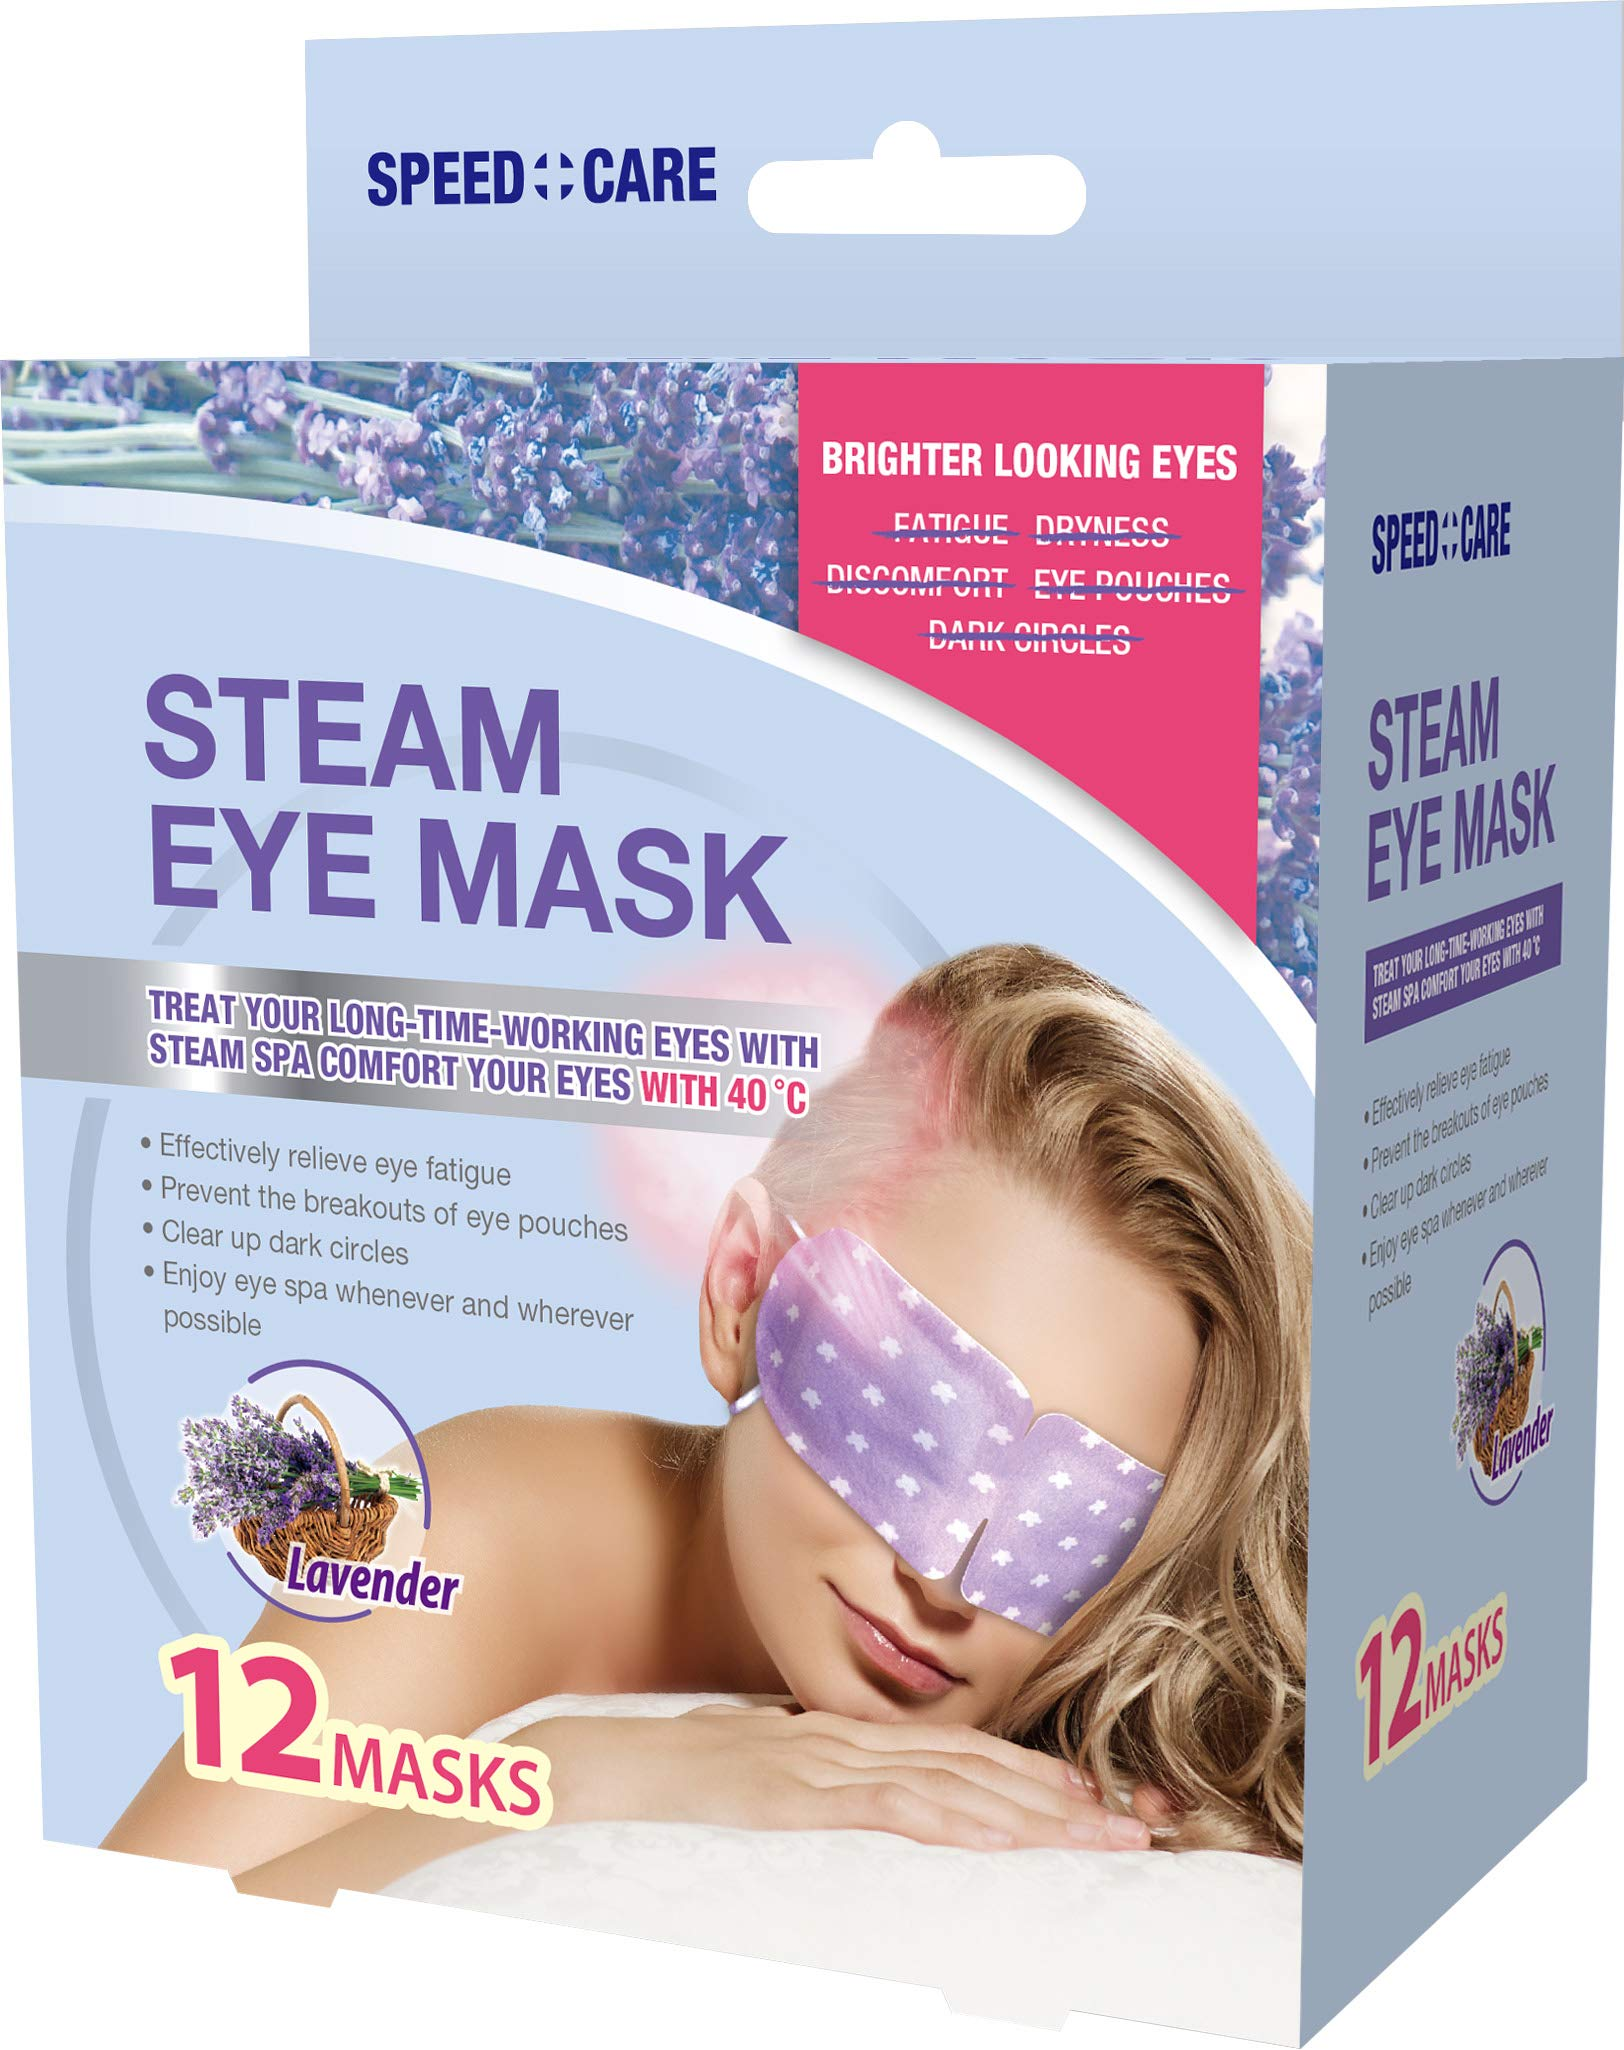 SPEED CARE Lavendar Scented Steam Warm Eye Mask, Stress Relieve 12 Masks in a box Sleep Eye Mask for Tired Dry Puffy Eyes Reduce Dark Circles by SPEED CARE